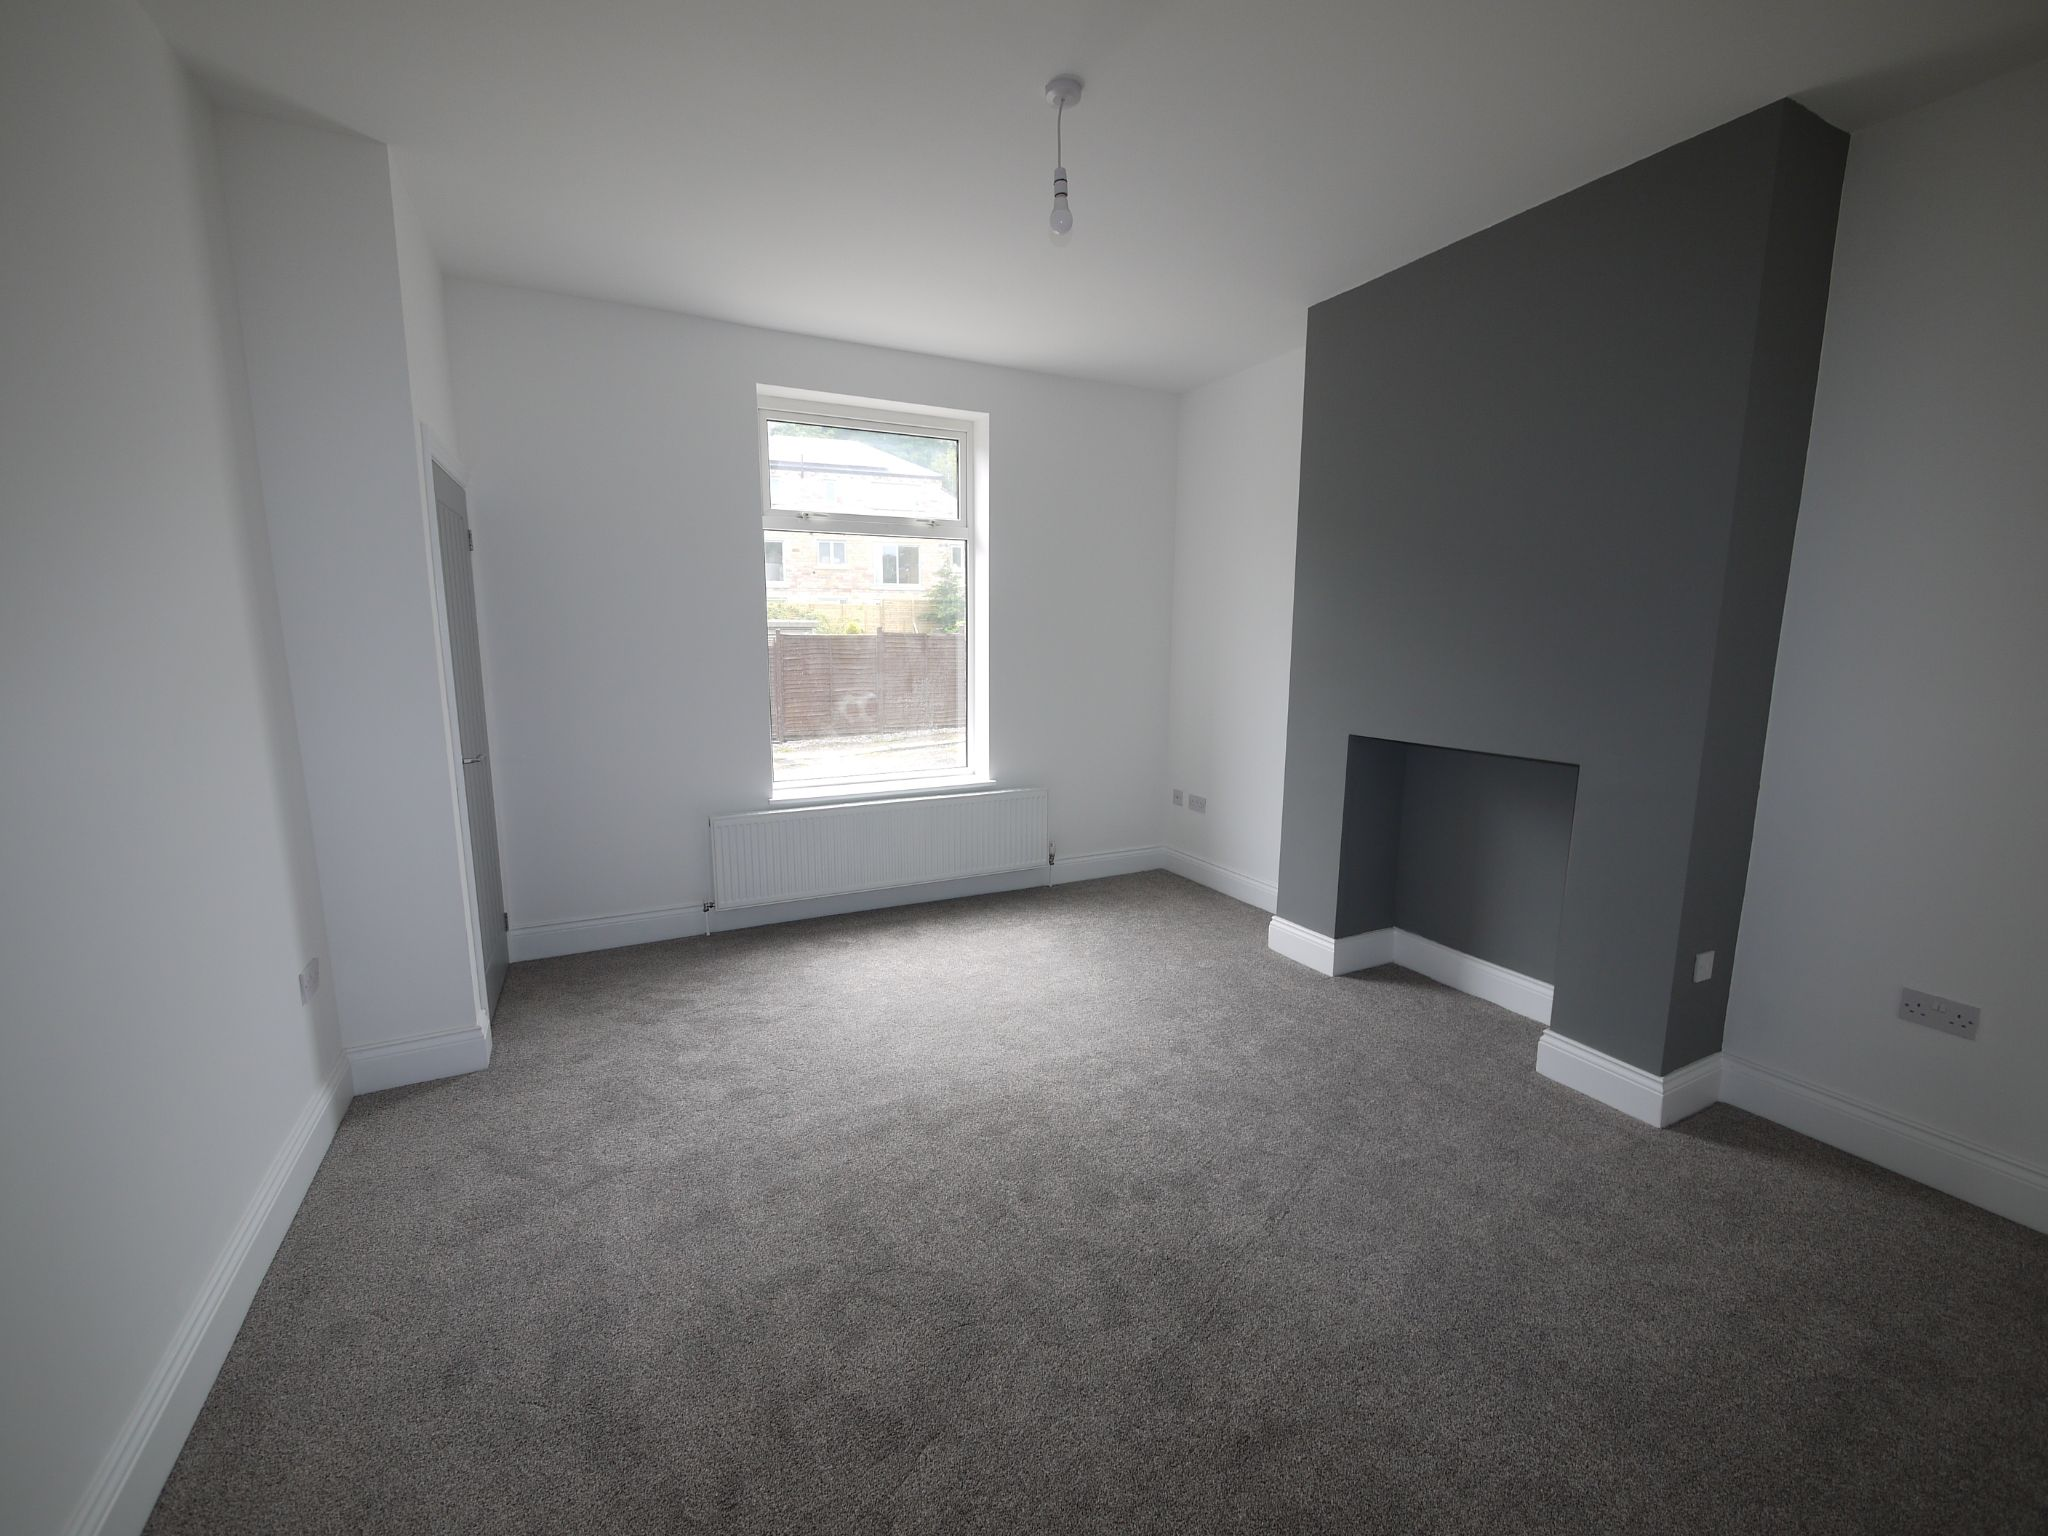 3 bedroom mid terraced house For Sale in Brighouse - Lounge.